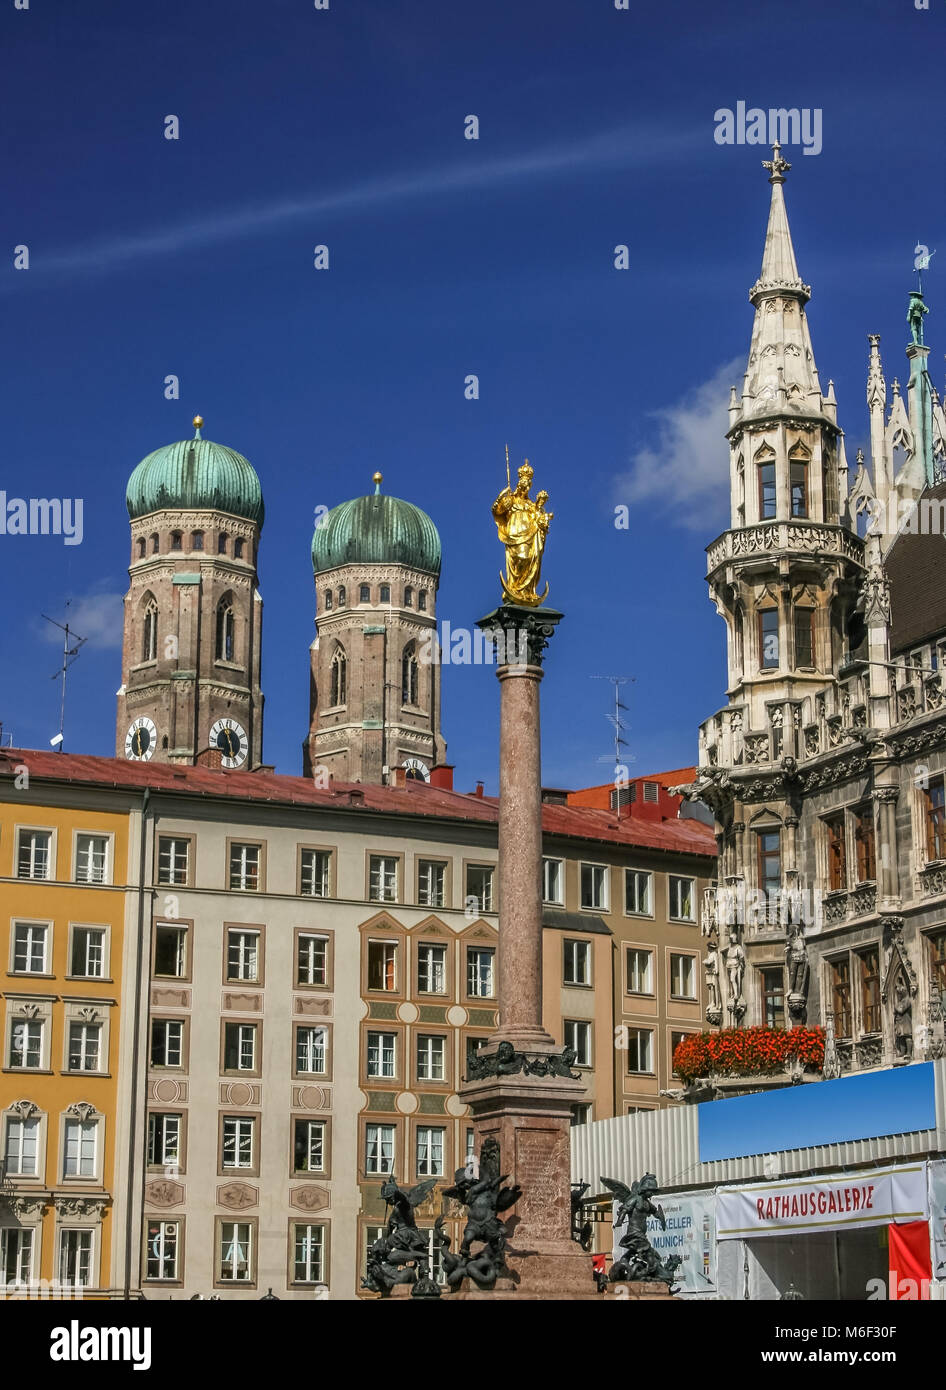 Central Marienplatz square in Munich Germany - Stock Image